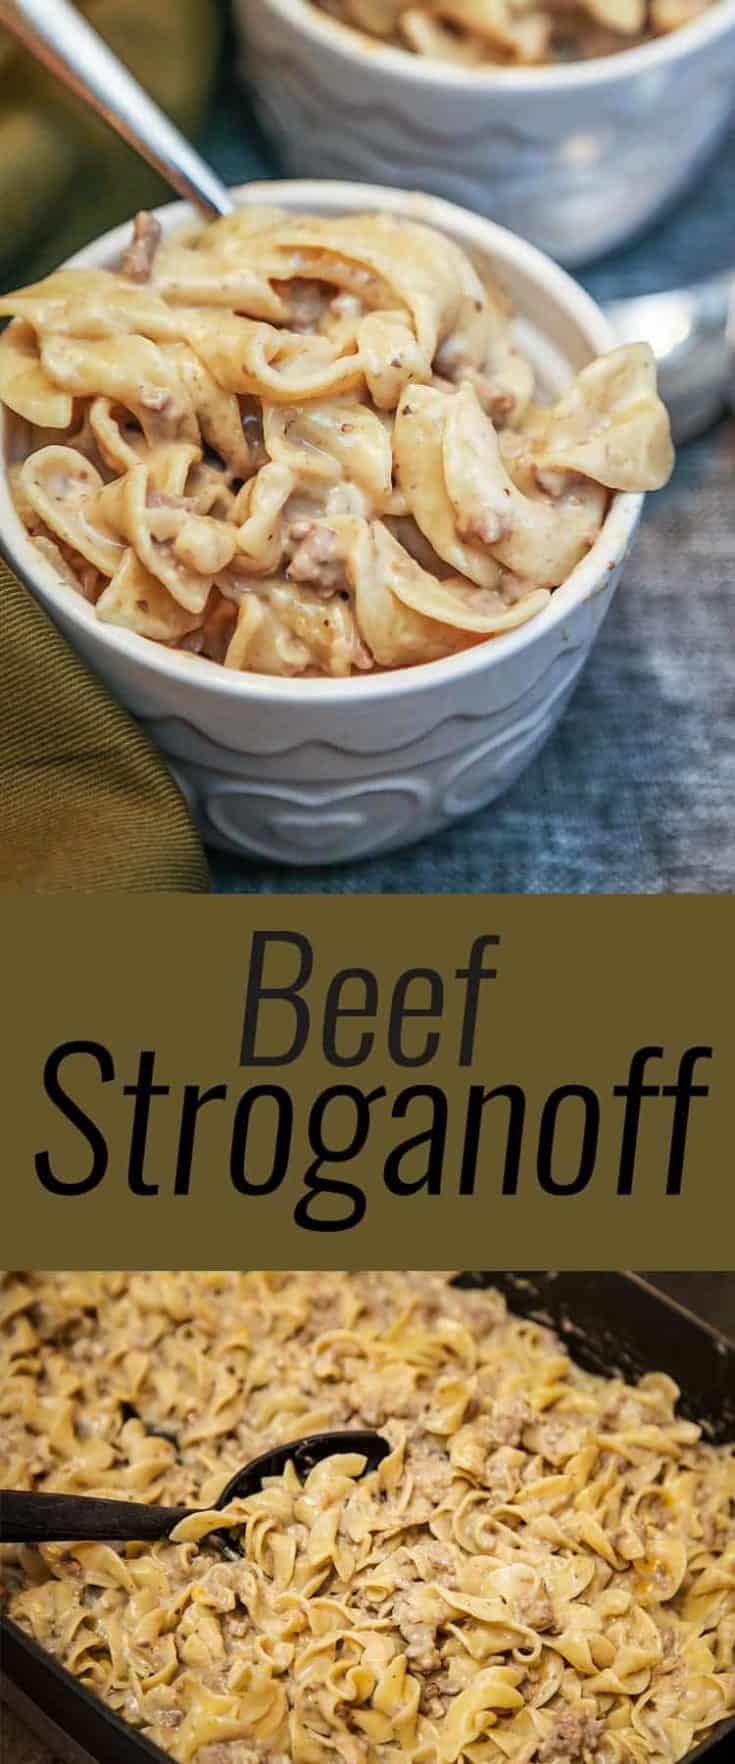 This simple and easy delicious Beef Stroganoff recipe is one of our family favourite ground beef recipe, and is a great under 30 minute meal. #BeefStroganoff #easyrecipes